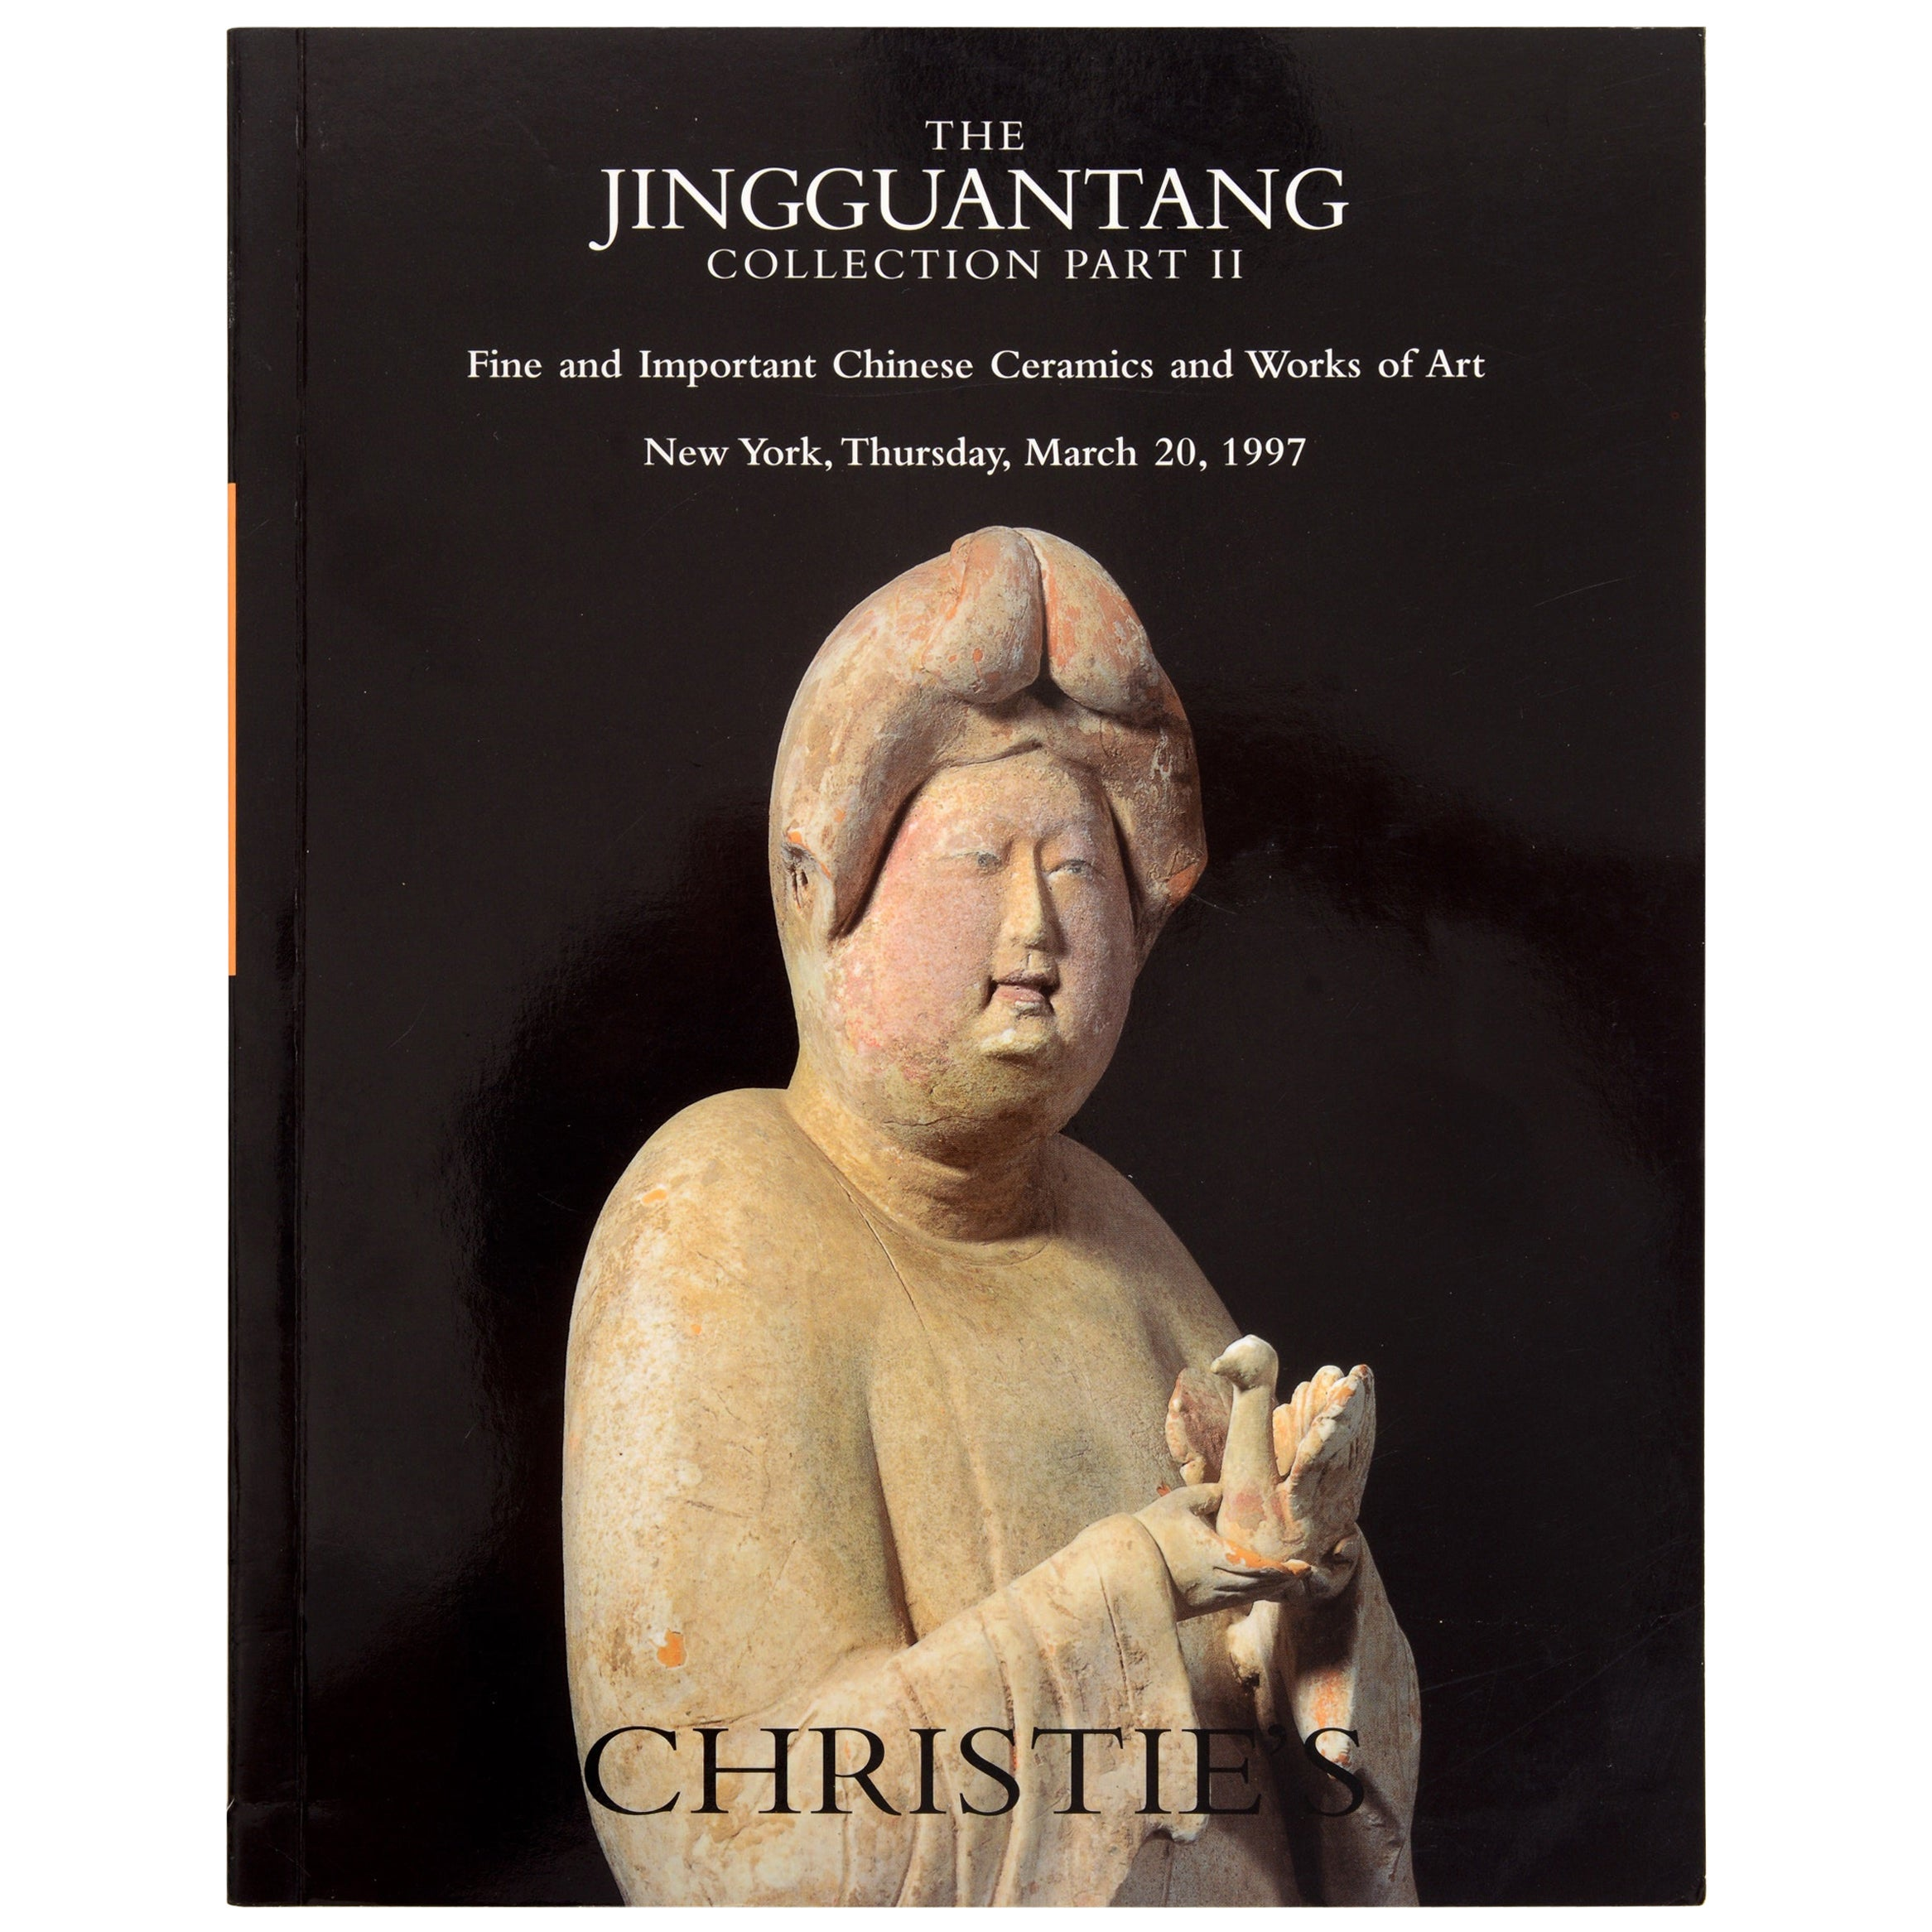 Christie's: Jingguantang Collection Part II Important Chinese Ceramics